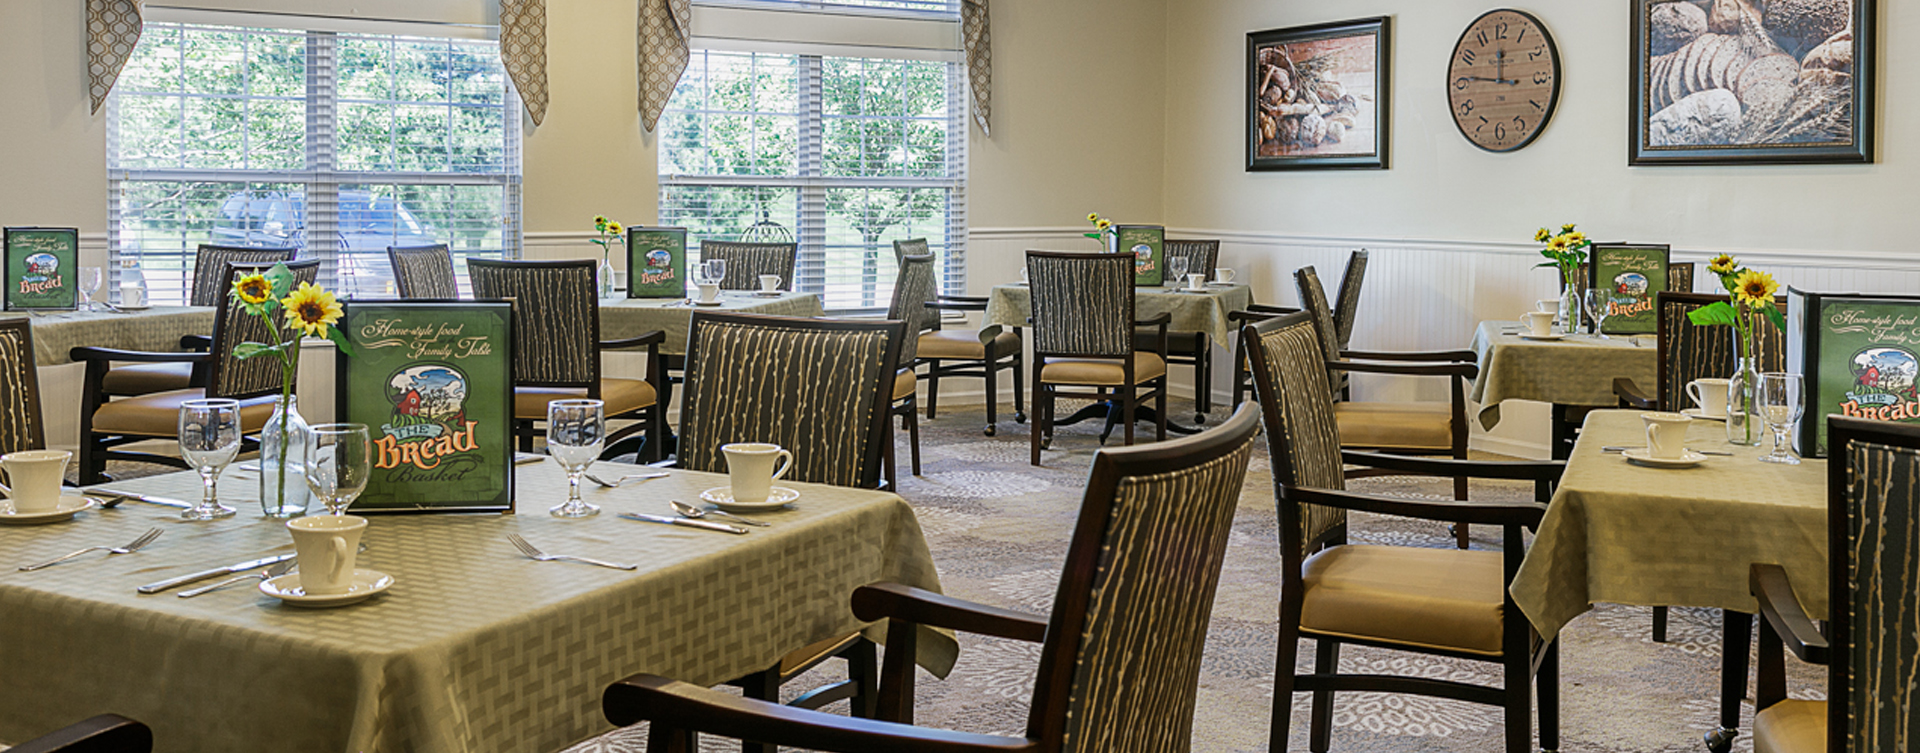 Enjoy homestyle food with made-from-scratch recipes in our dining room at Bickford of Marshalltown